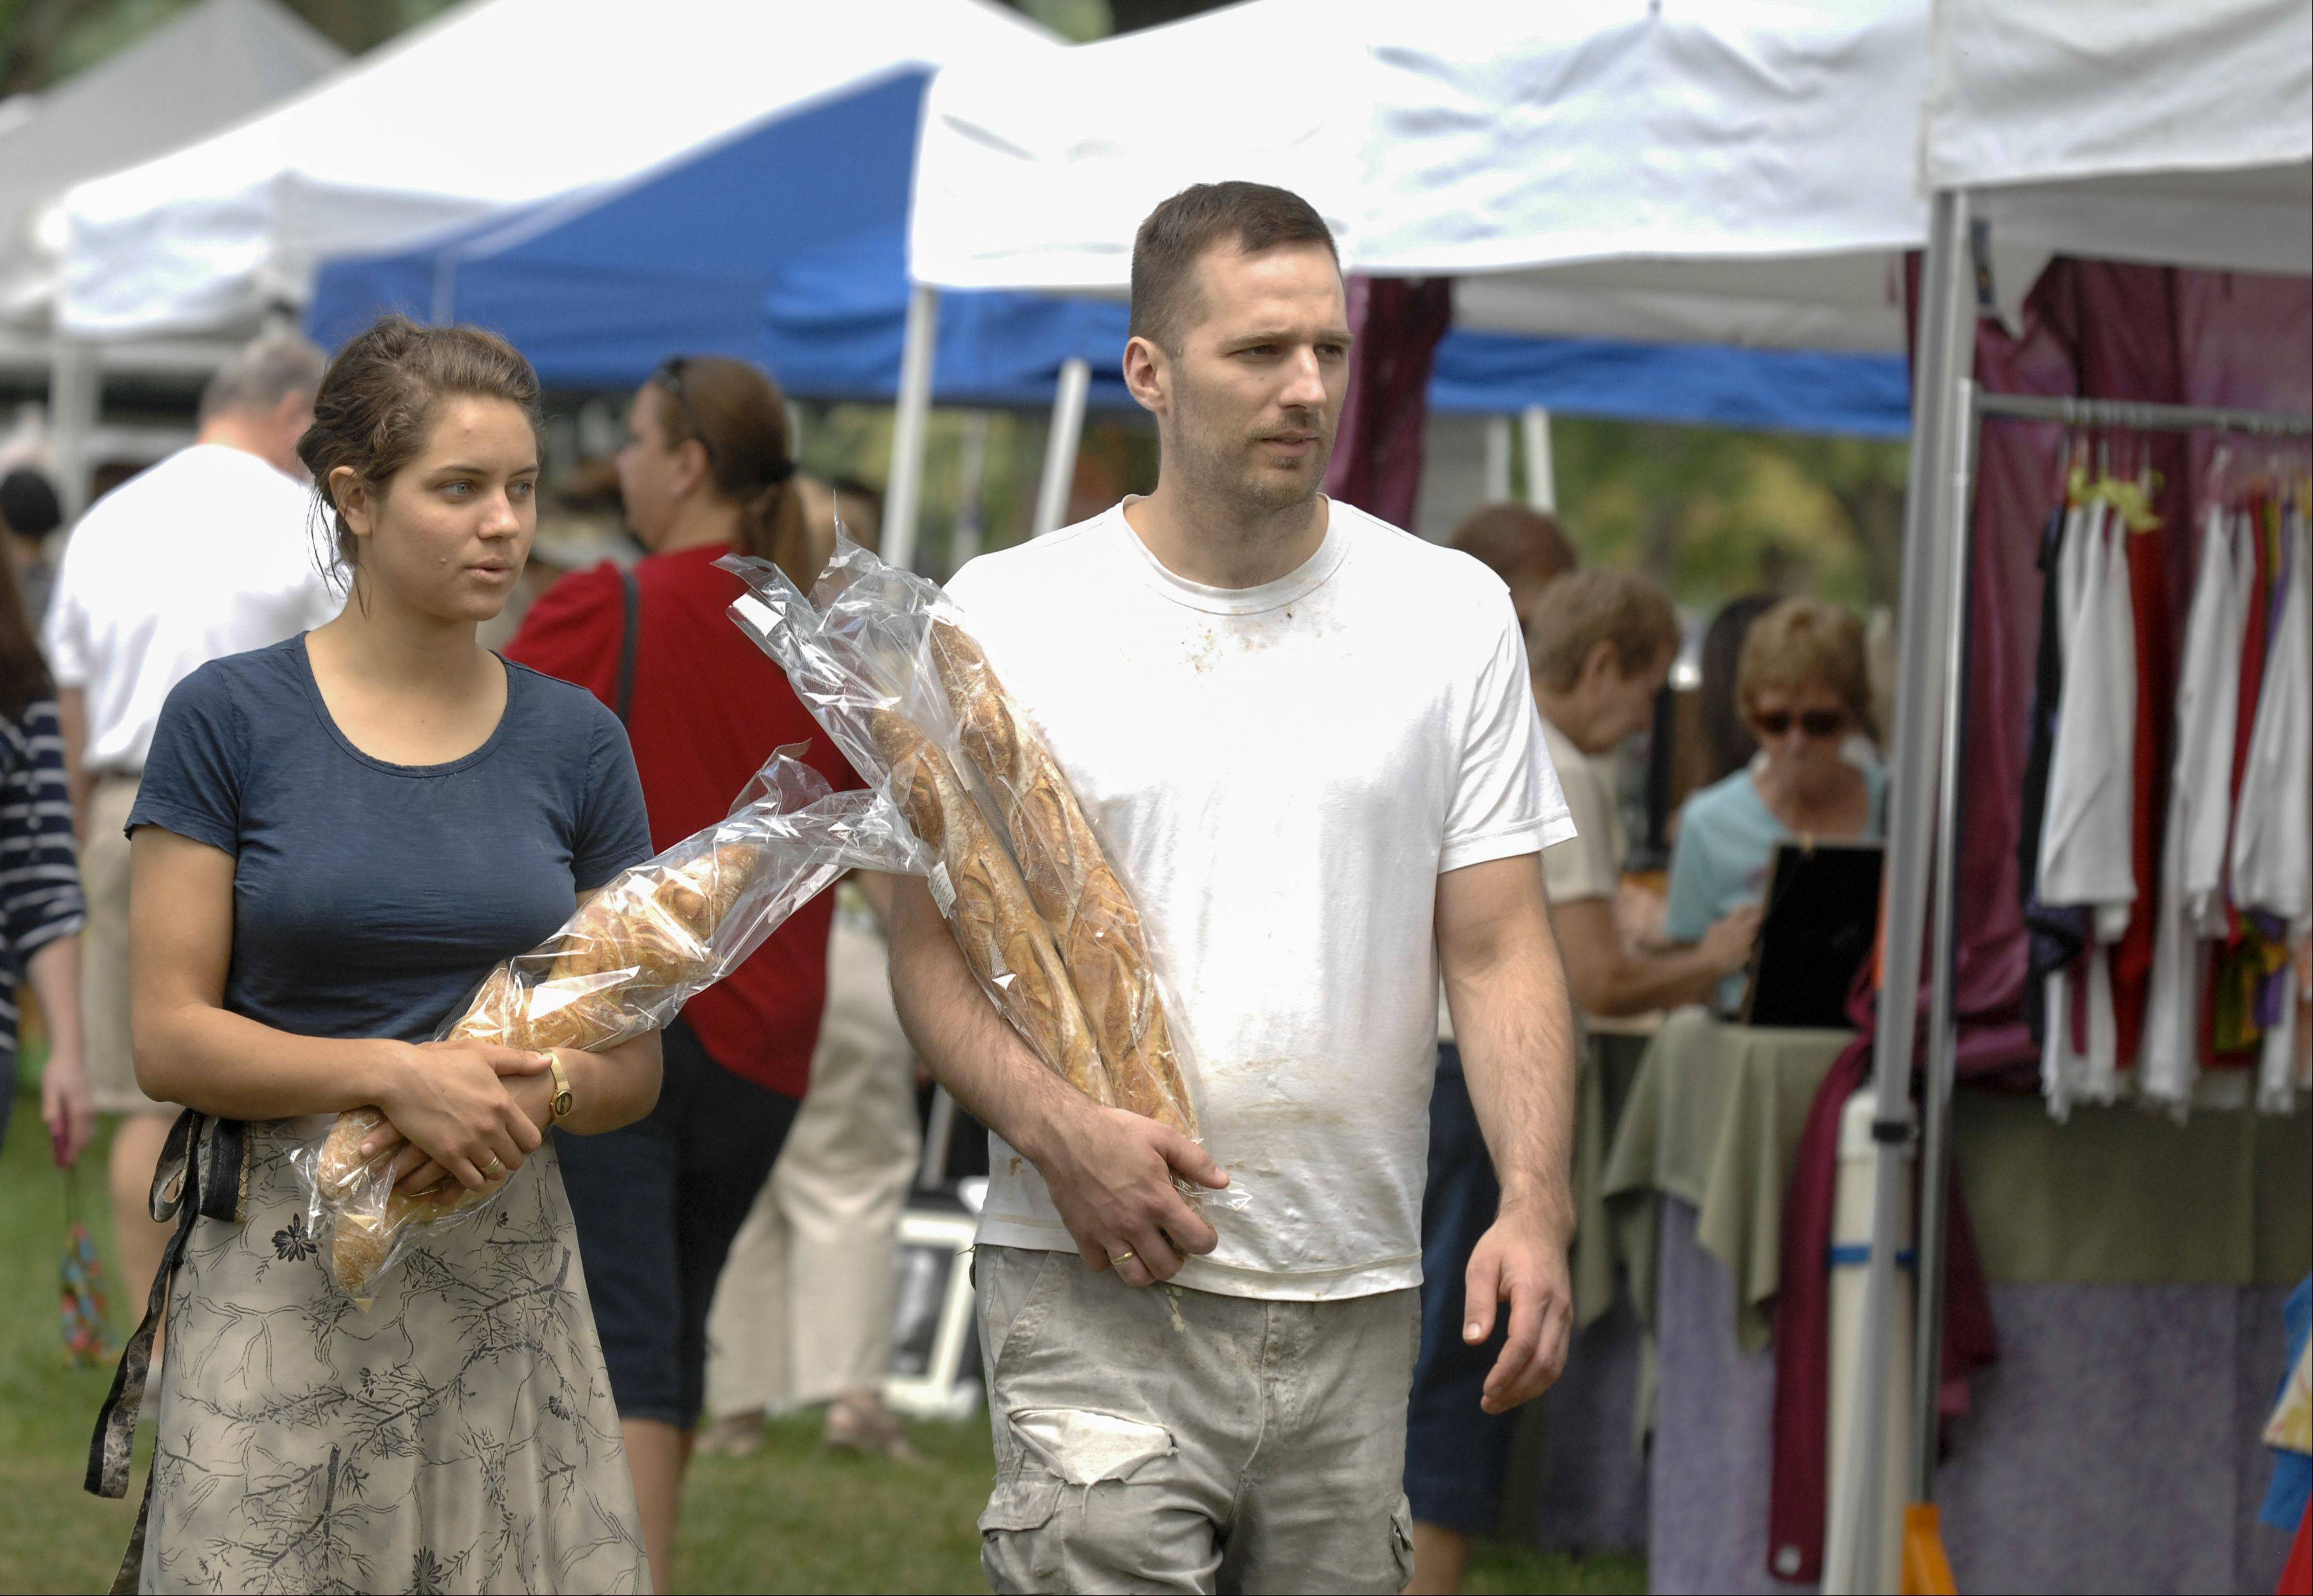 Carissa and Dusan Katic carry two different kinds of French breads they purchased at the French market Sunday at Cantigny Park's French Connection Day in Wheaton.